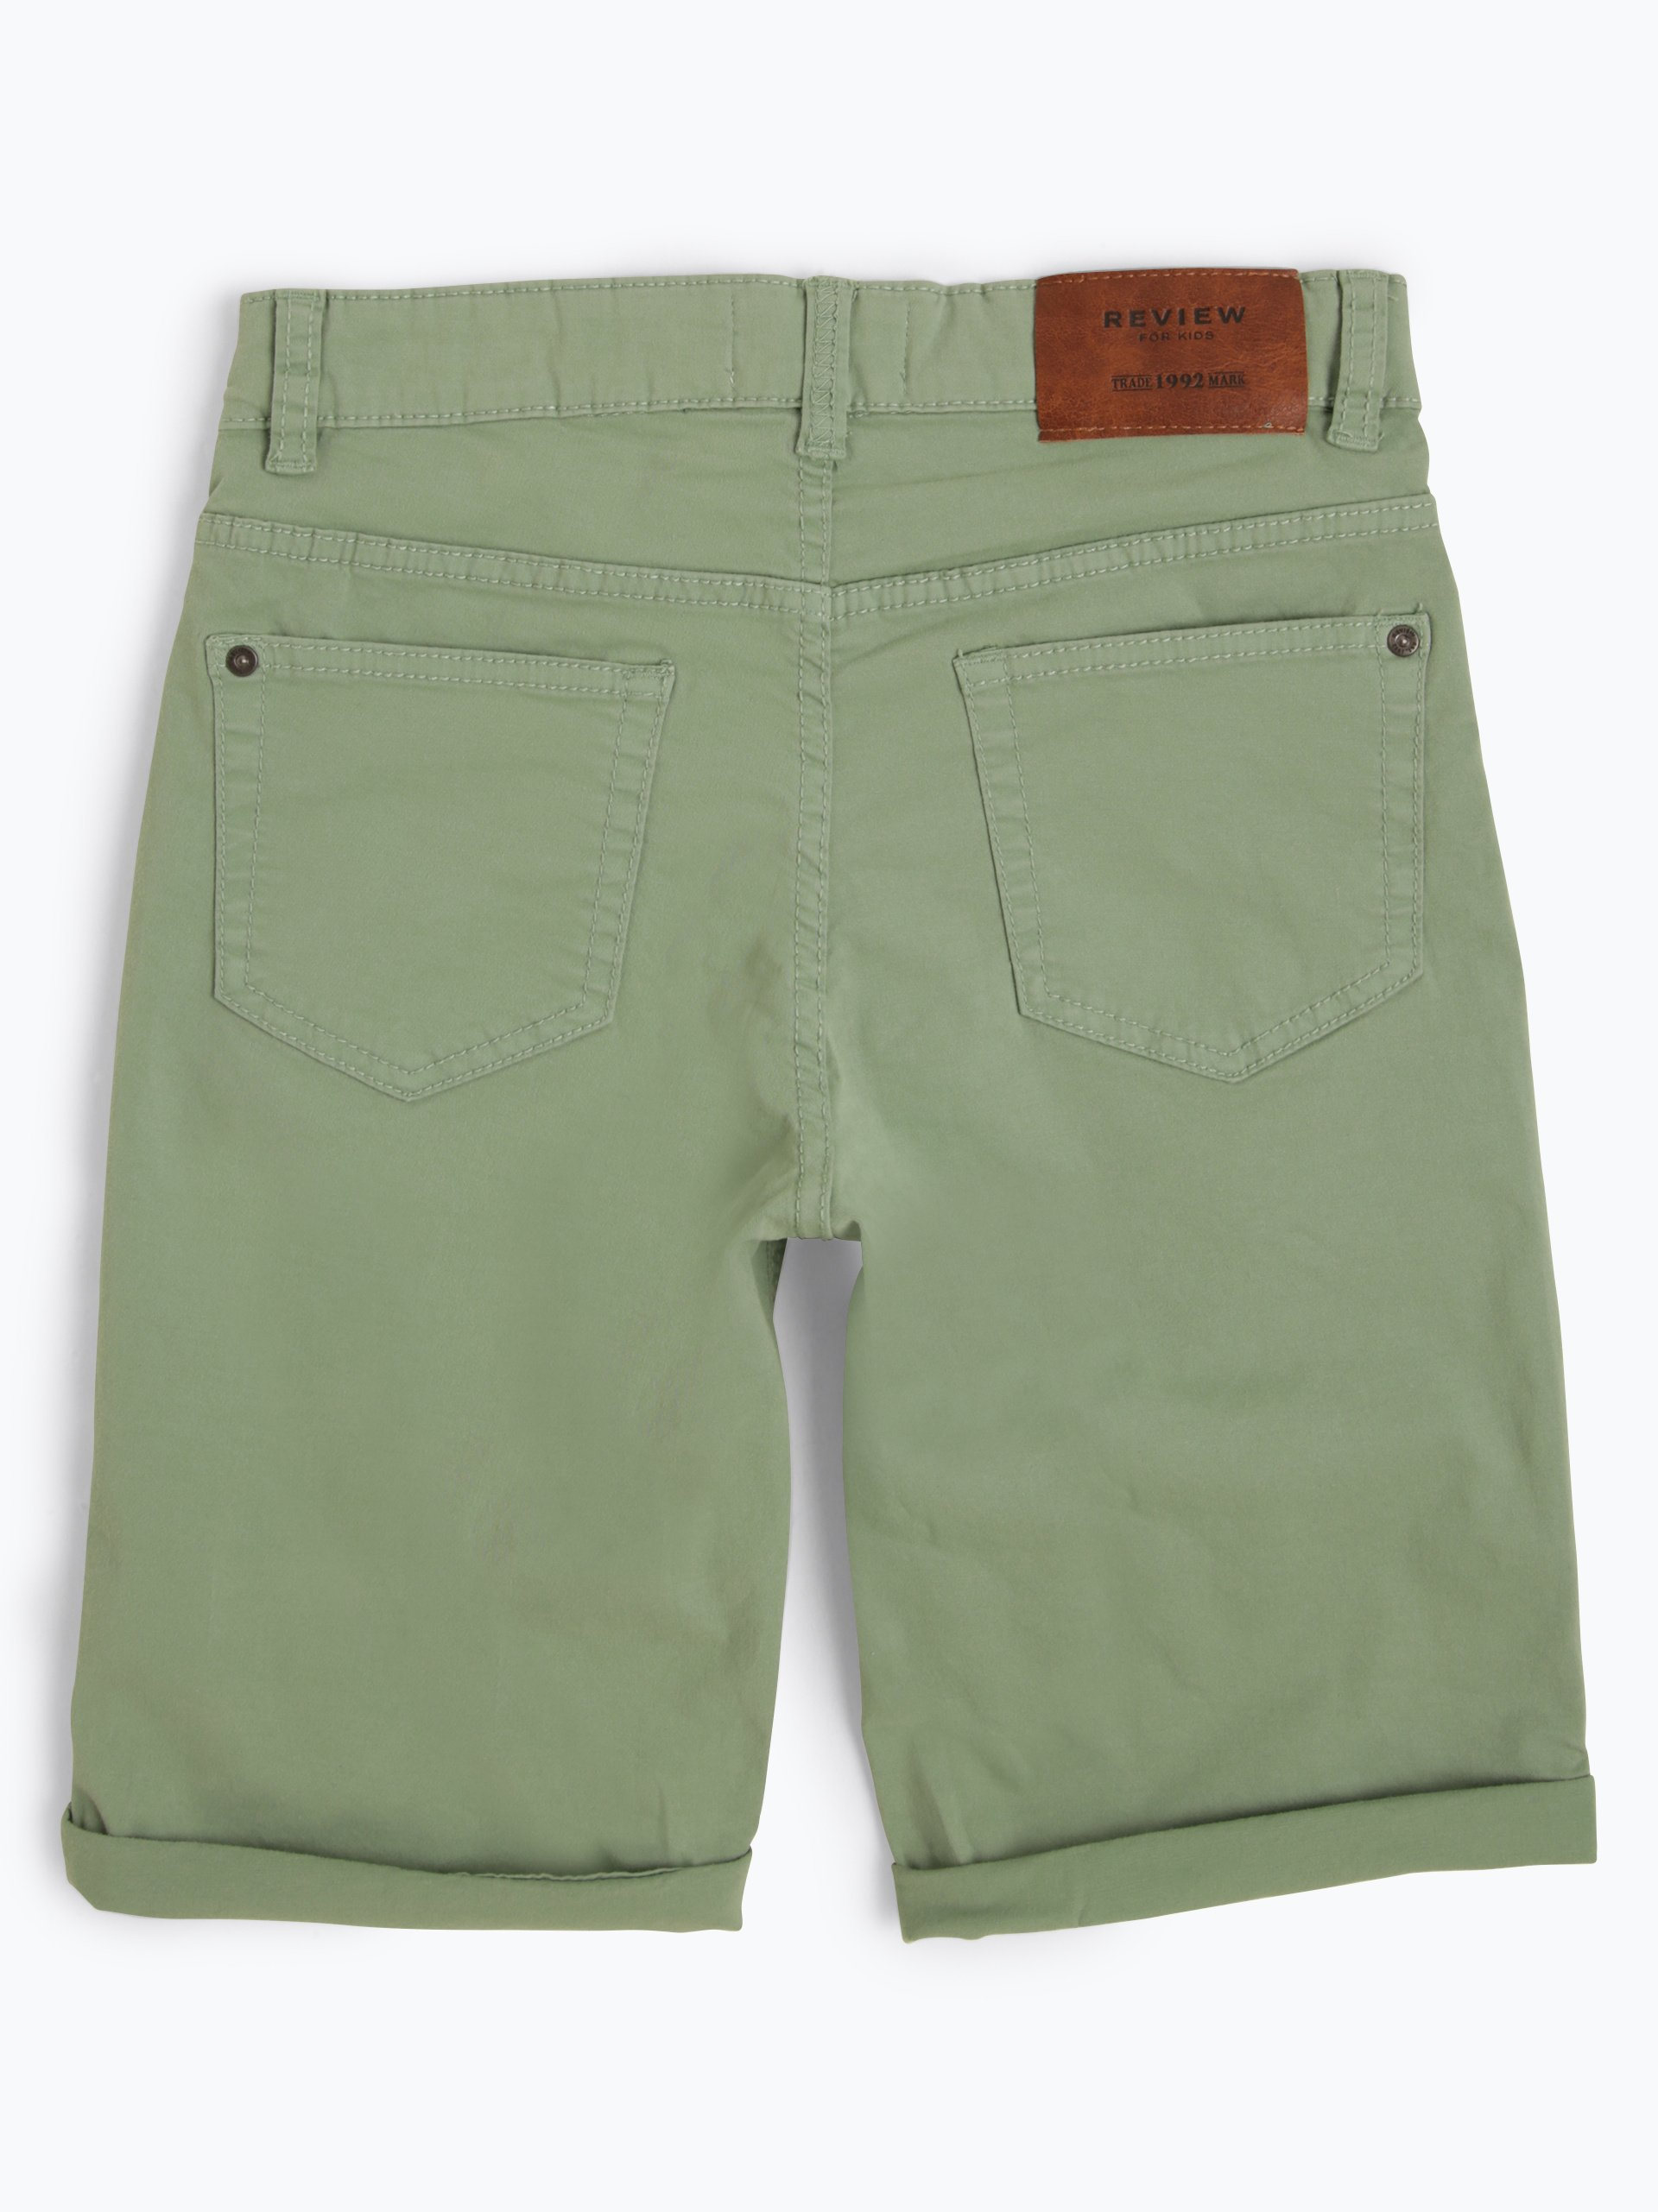 Review Jungen Shorts